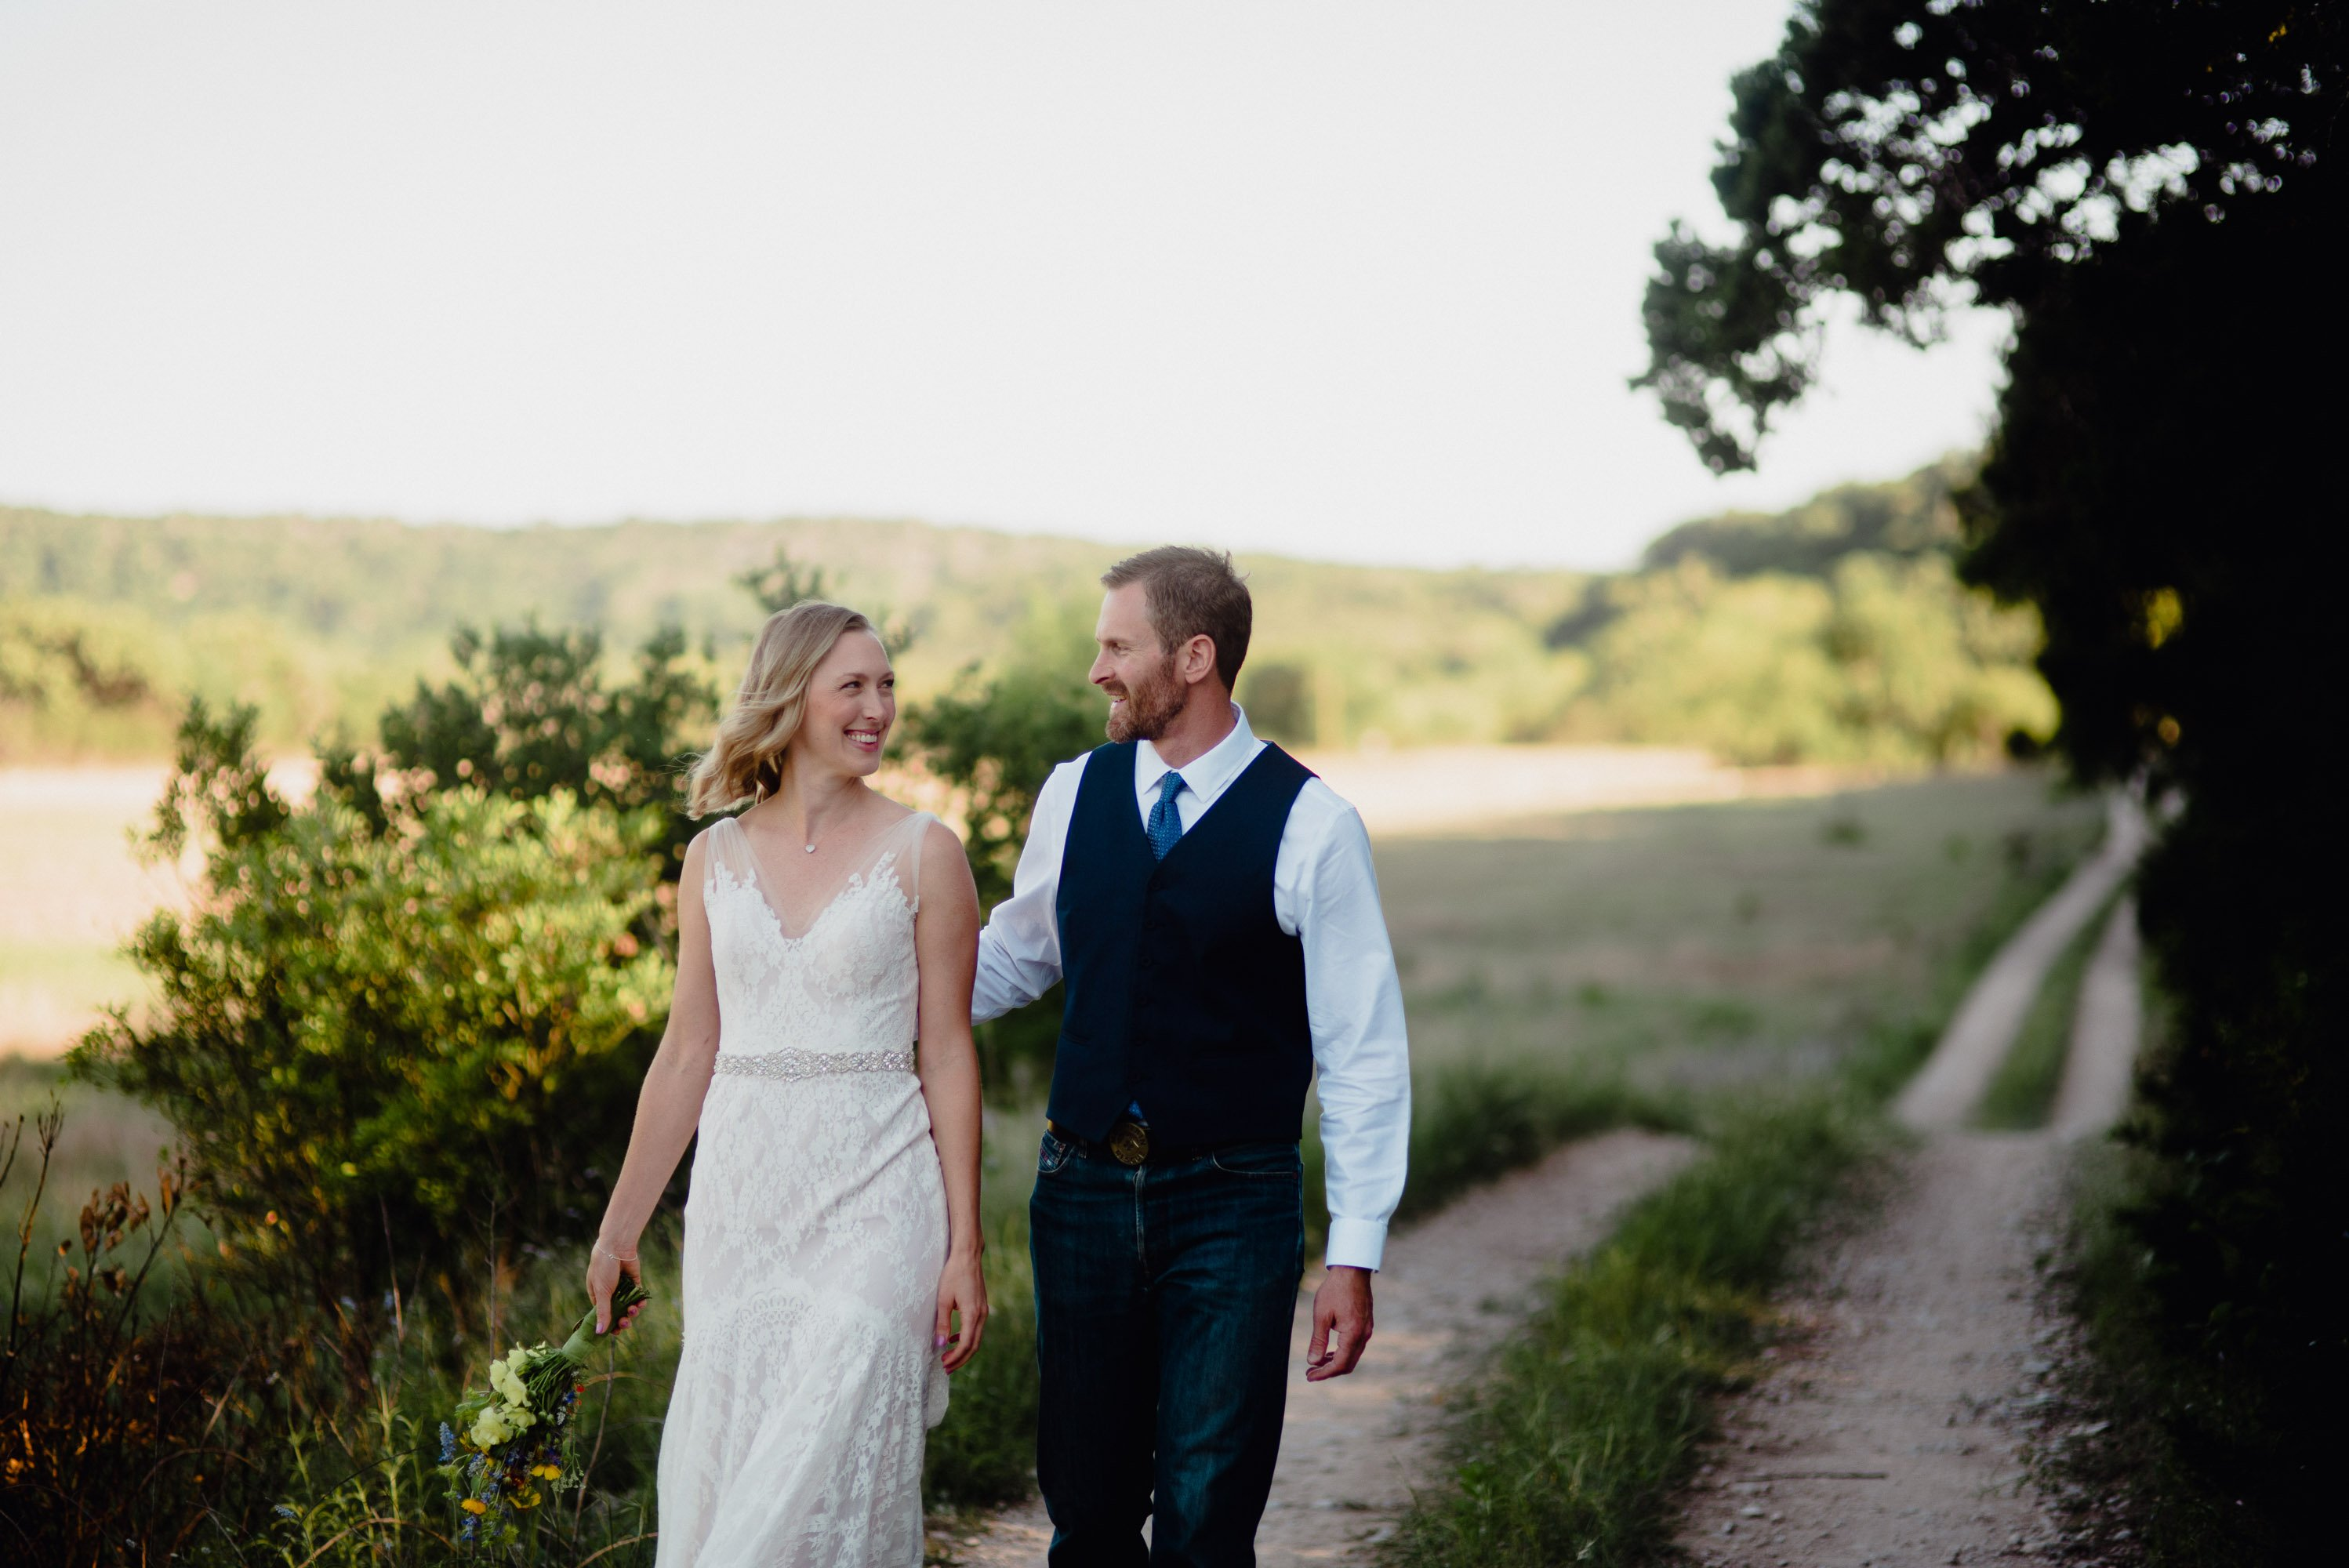 garner state park wedding photography